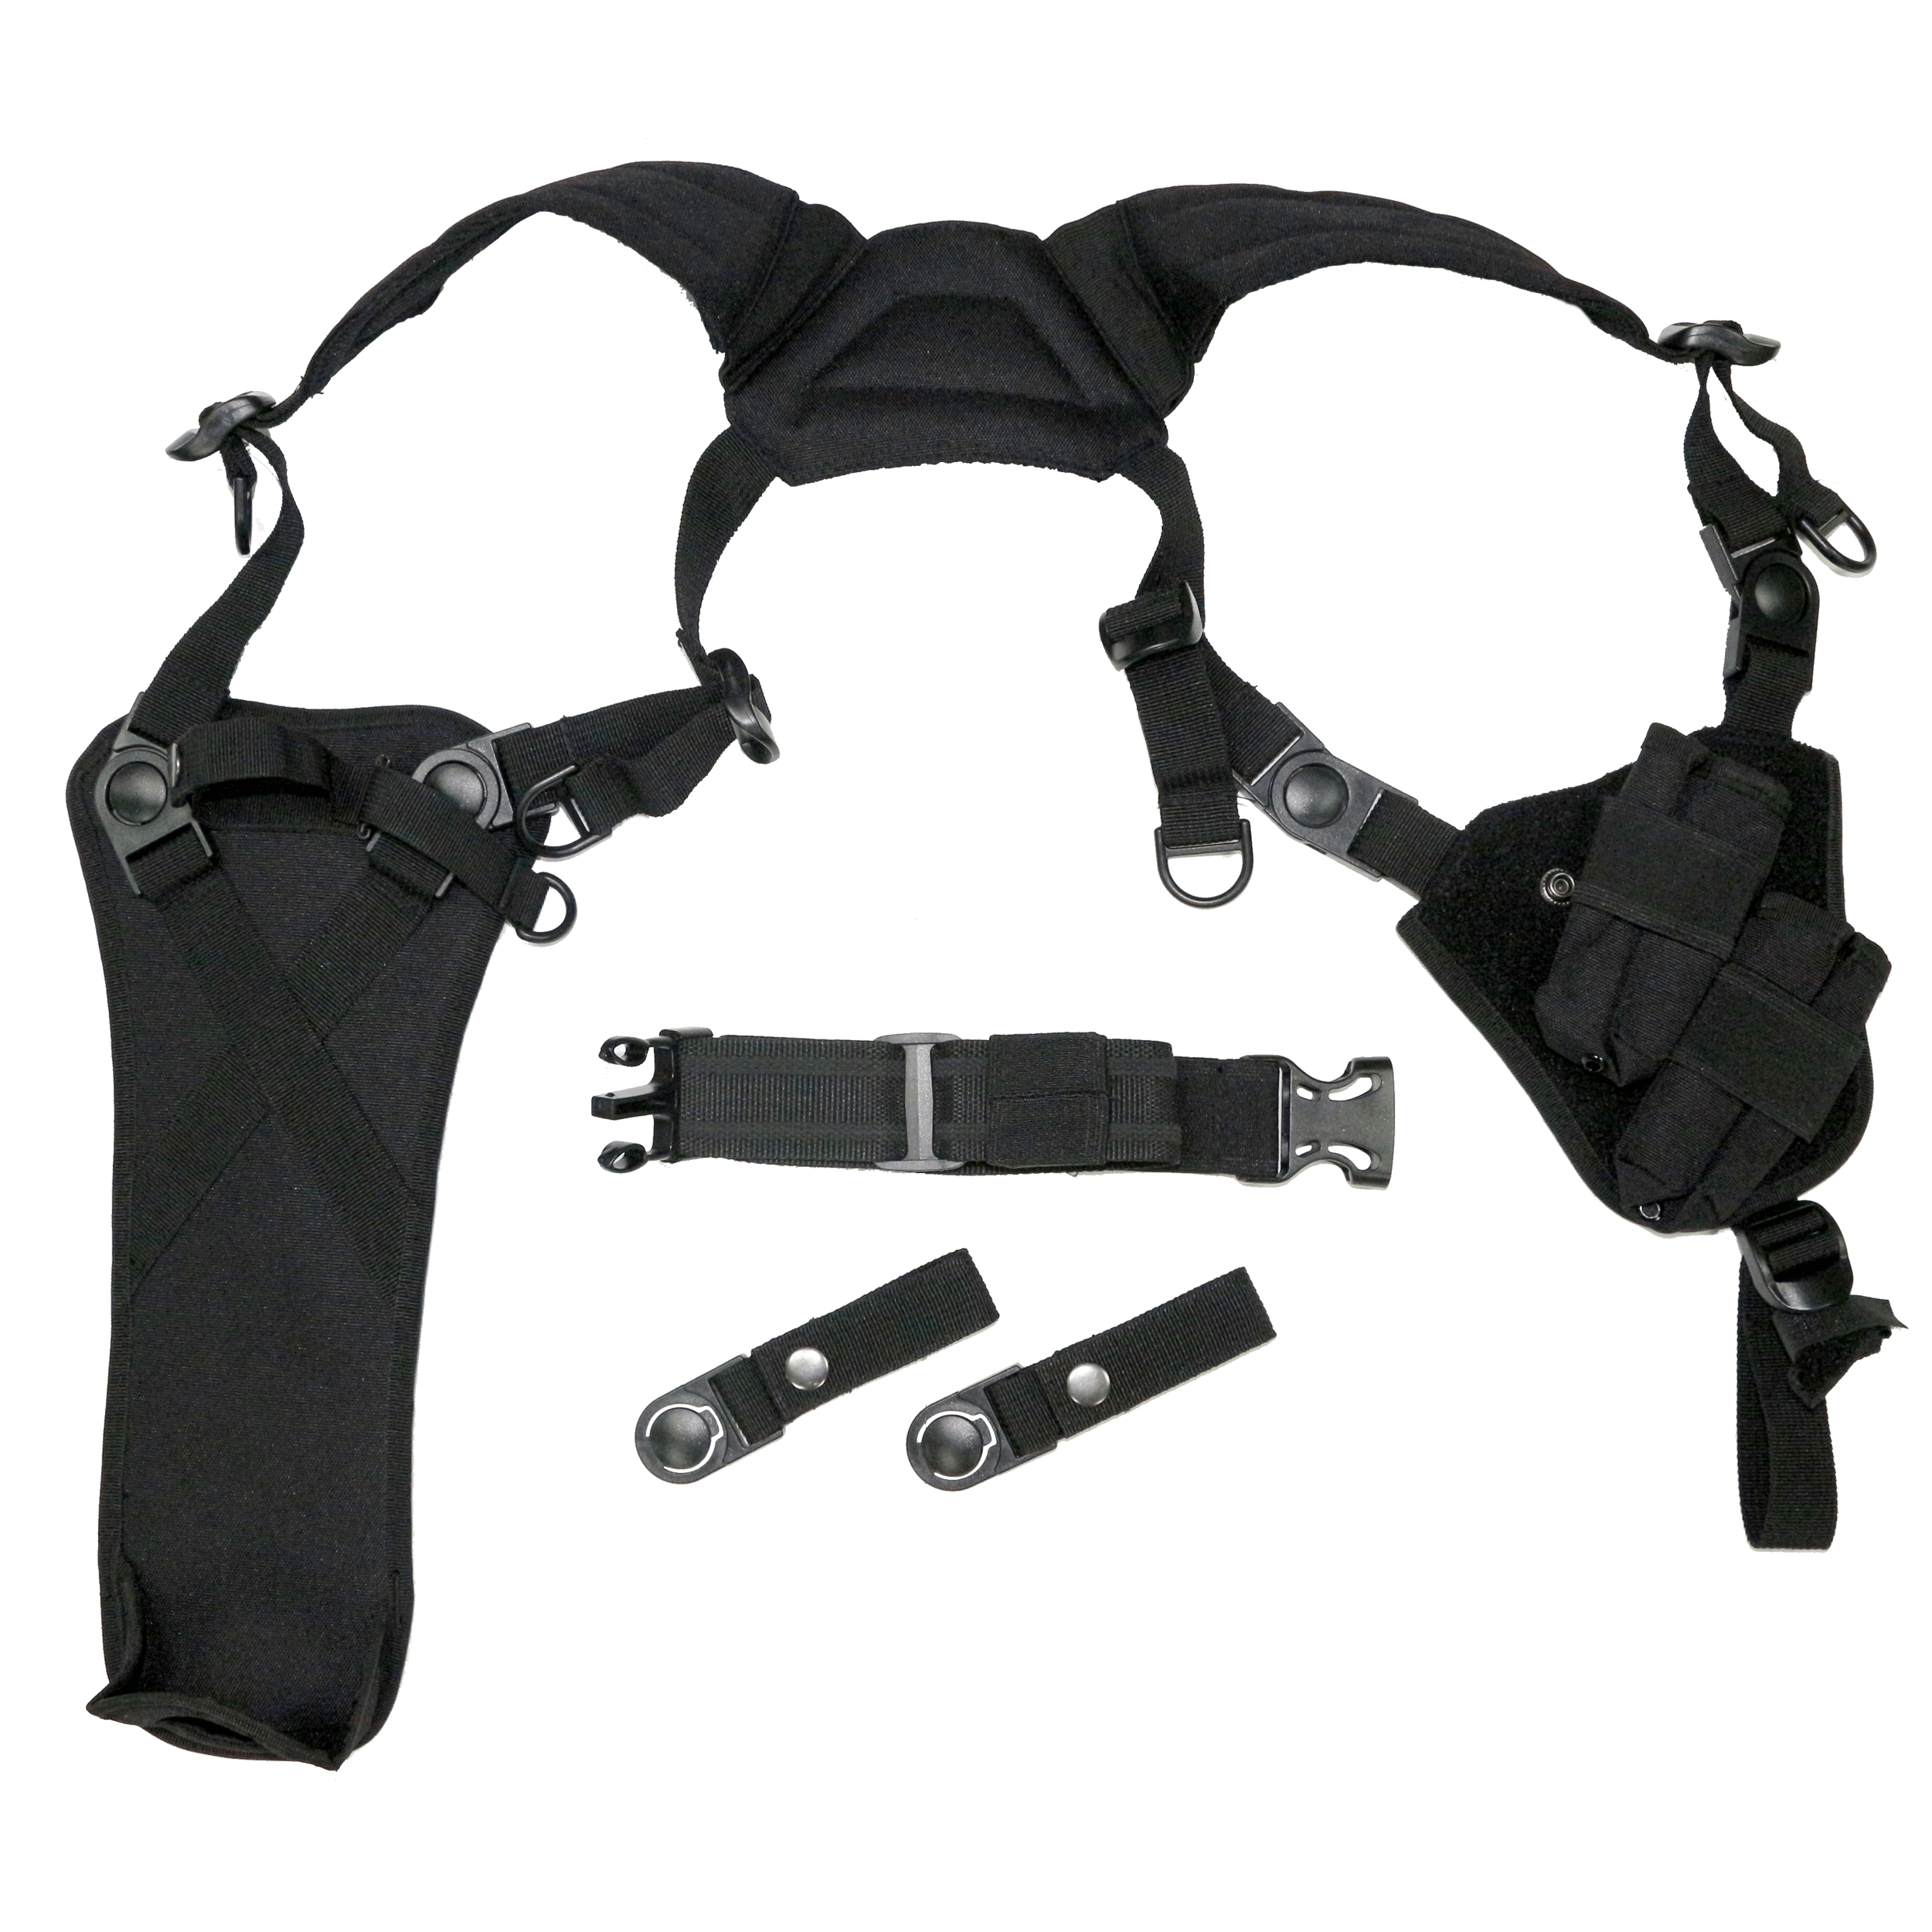 KPOS G2 Shoulder and Thigh Rig Holster